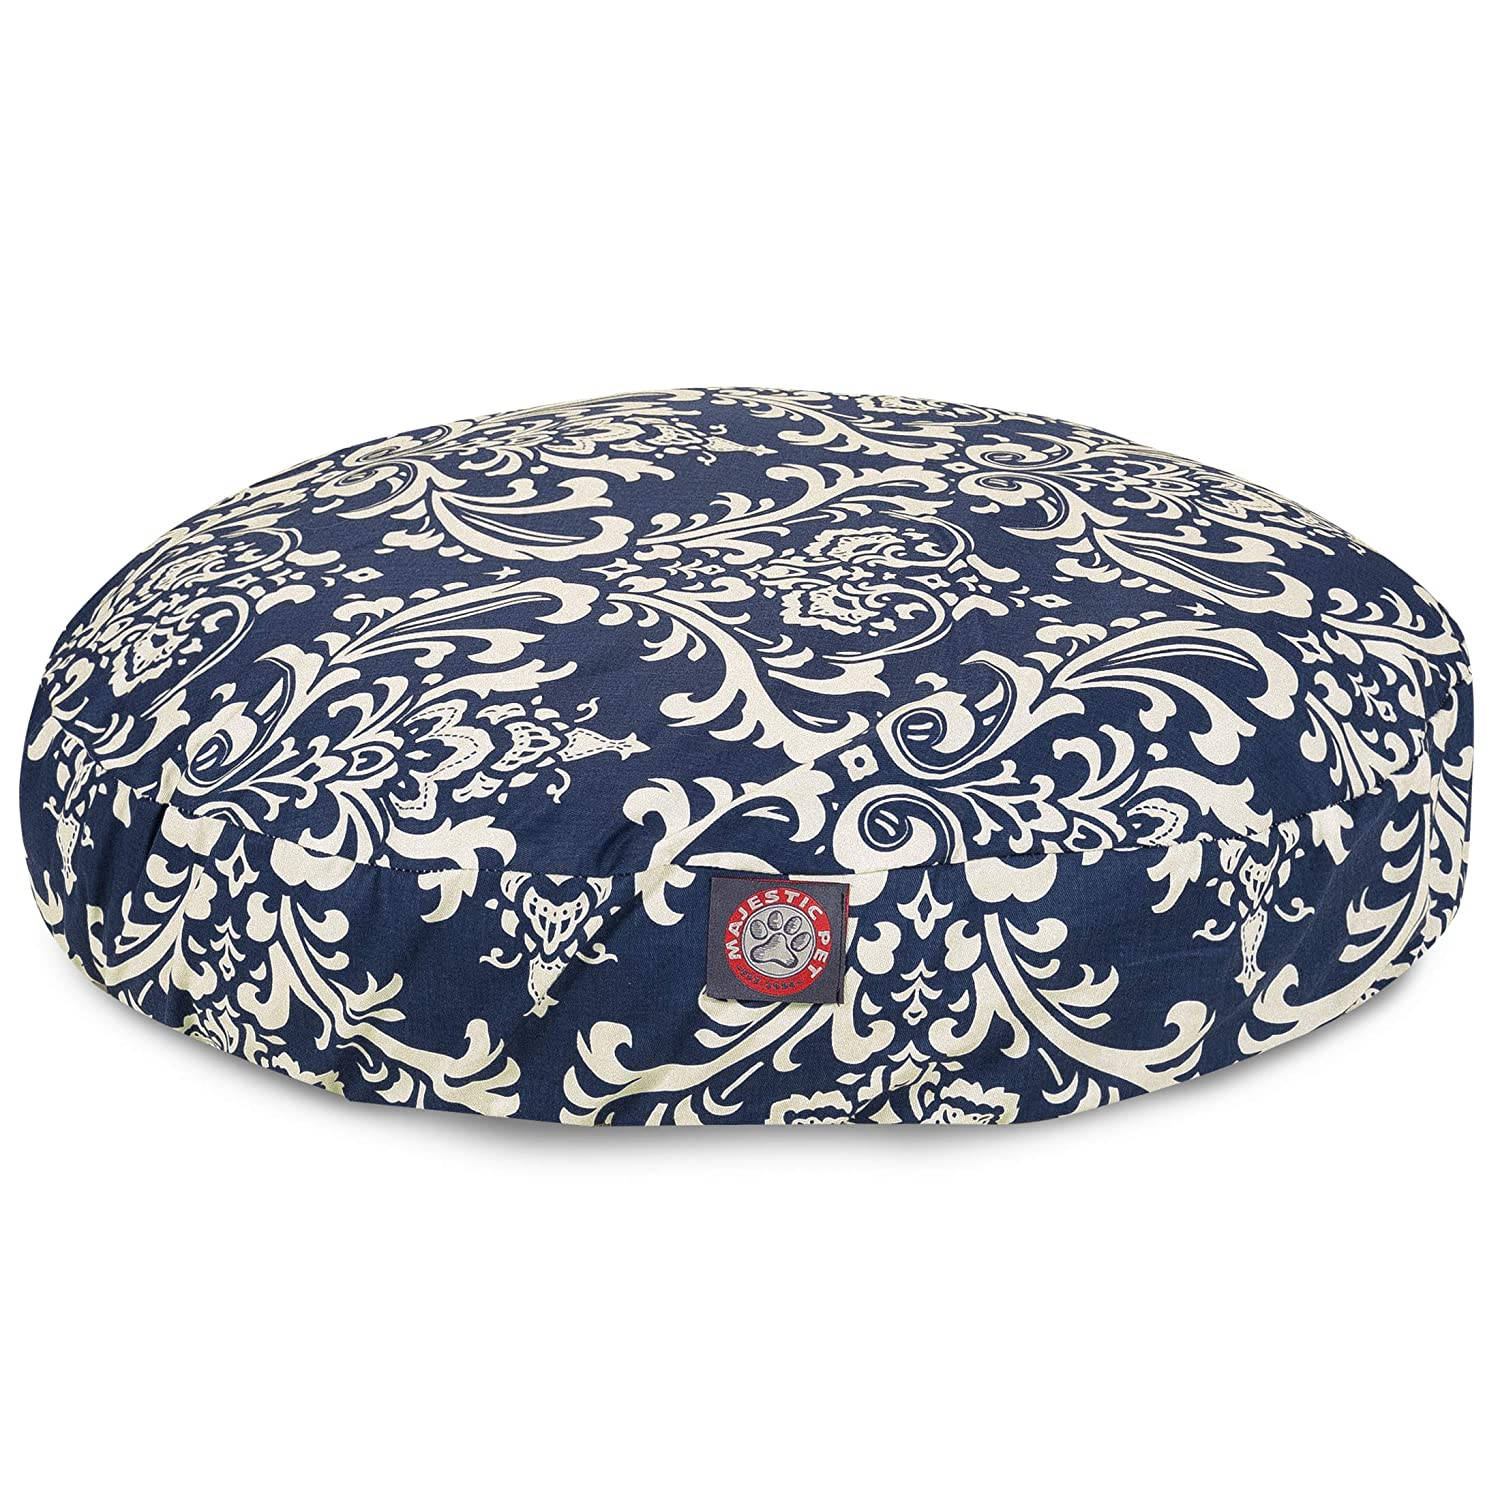 Navy bluee French Quarter Small Round Indoor Outdoor Pet Dog Bed with Removable Washable Cover by Majestic Pet Products